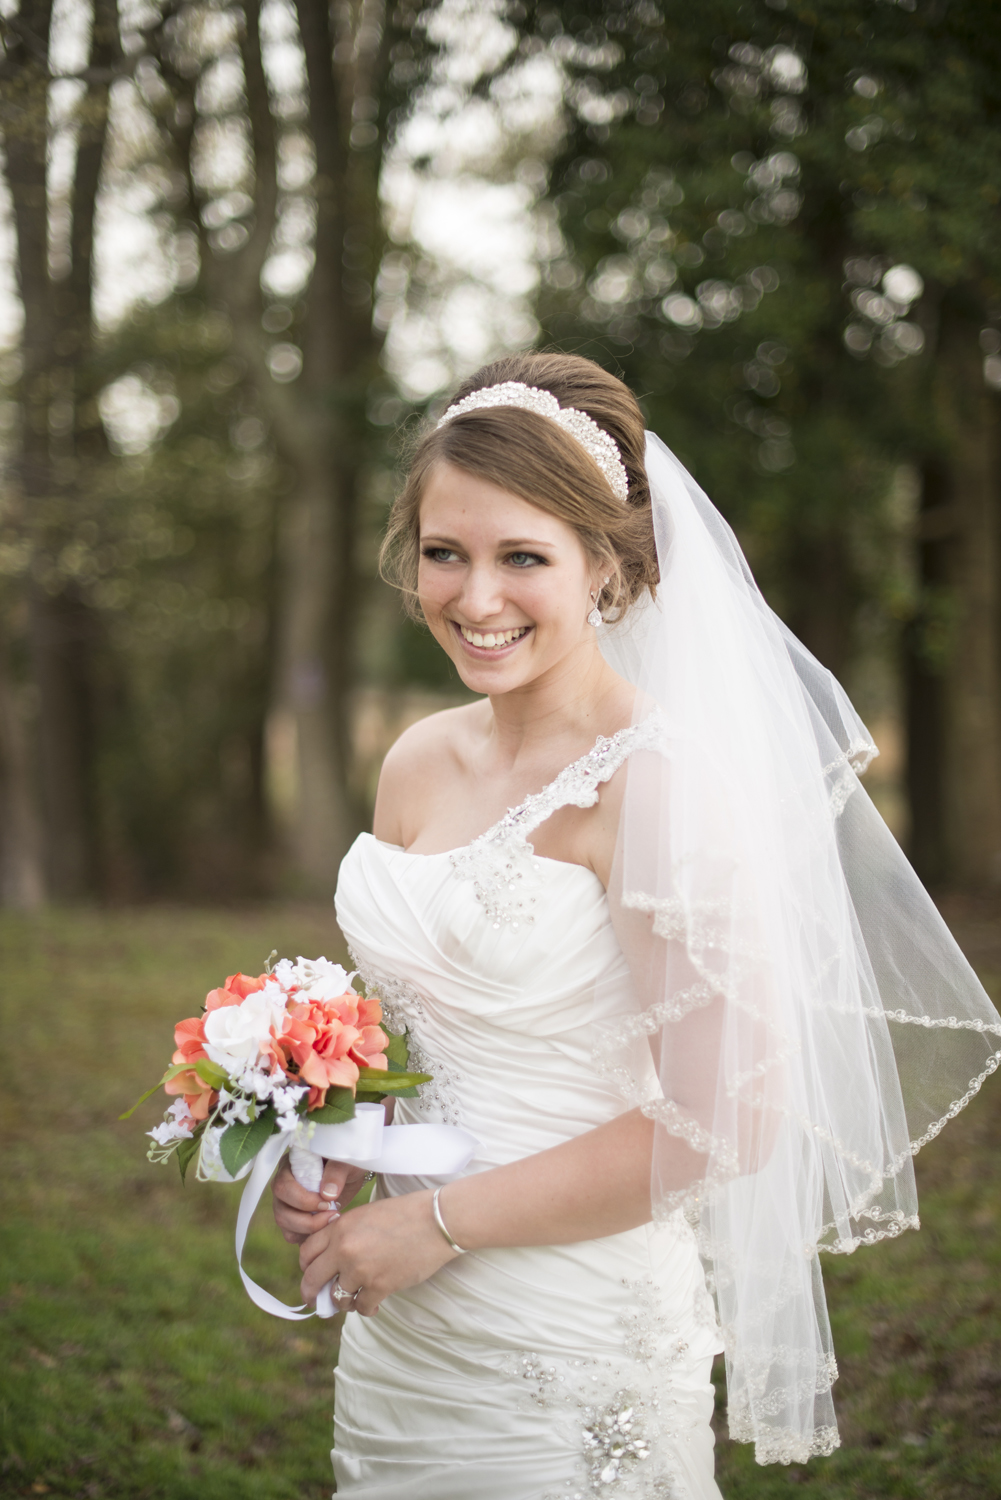 A stunning, giggling, beautiful bride during her bridal portraits | Maria Grace PHotography